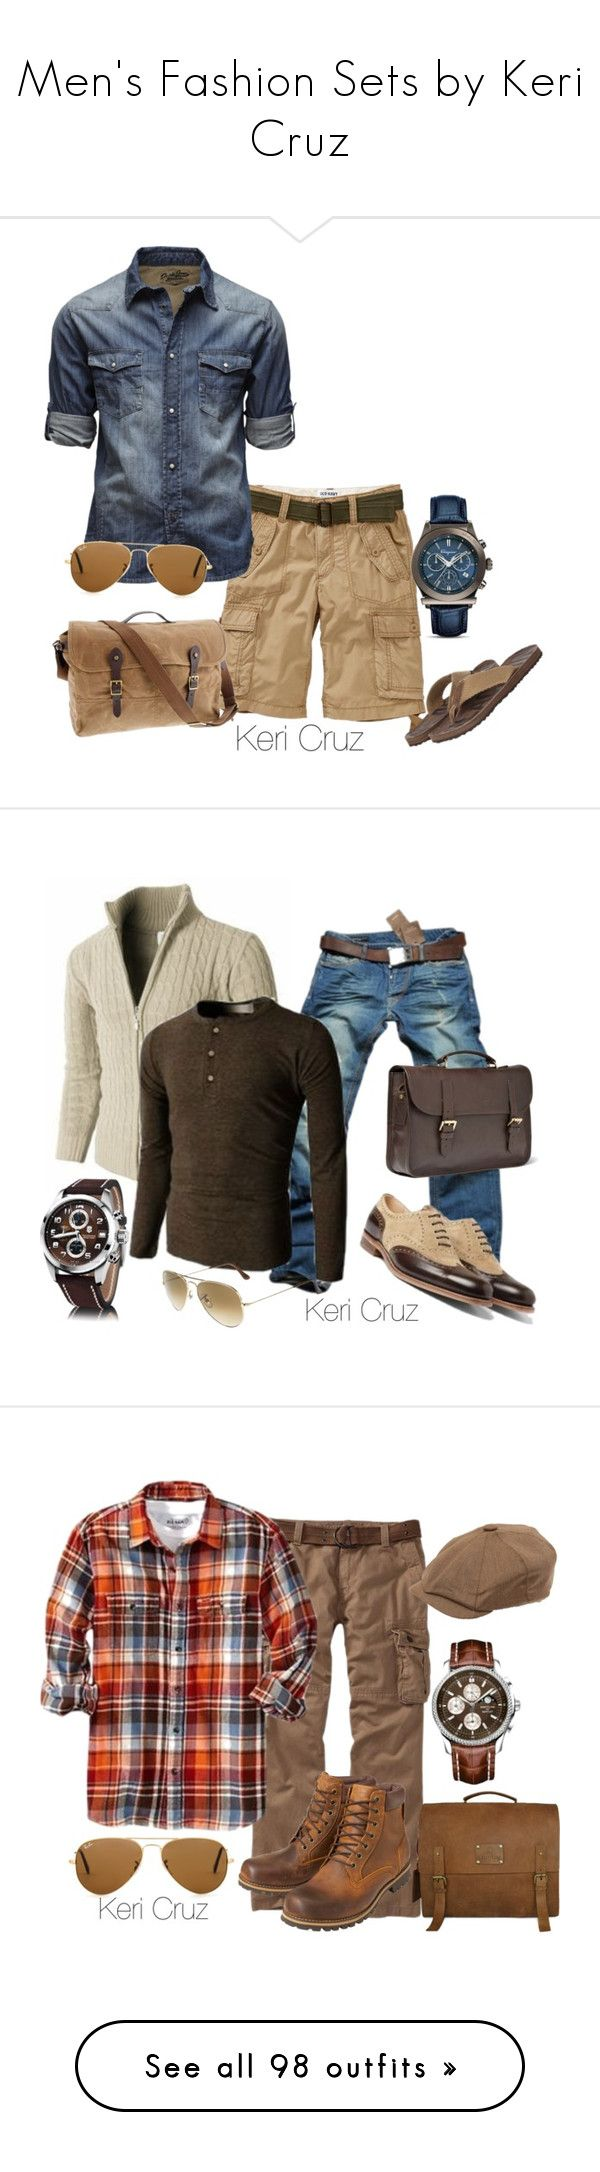 """Men's Fashion Sets by Keri Cruz"" by keri-cruz ❤ liked on Polyvore featuring Old Navy, Jack & Jones, Salvatore Ferragamo, Ray-Ban, J.Crew, Kenneth Cole Reaction, women's clothing, women, female and woman"